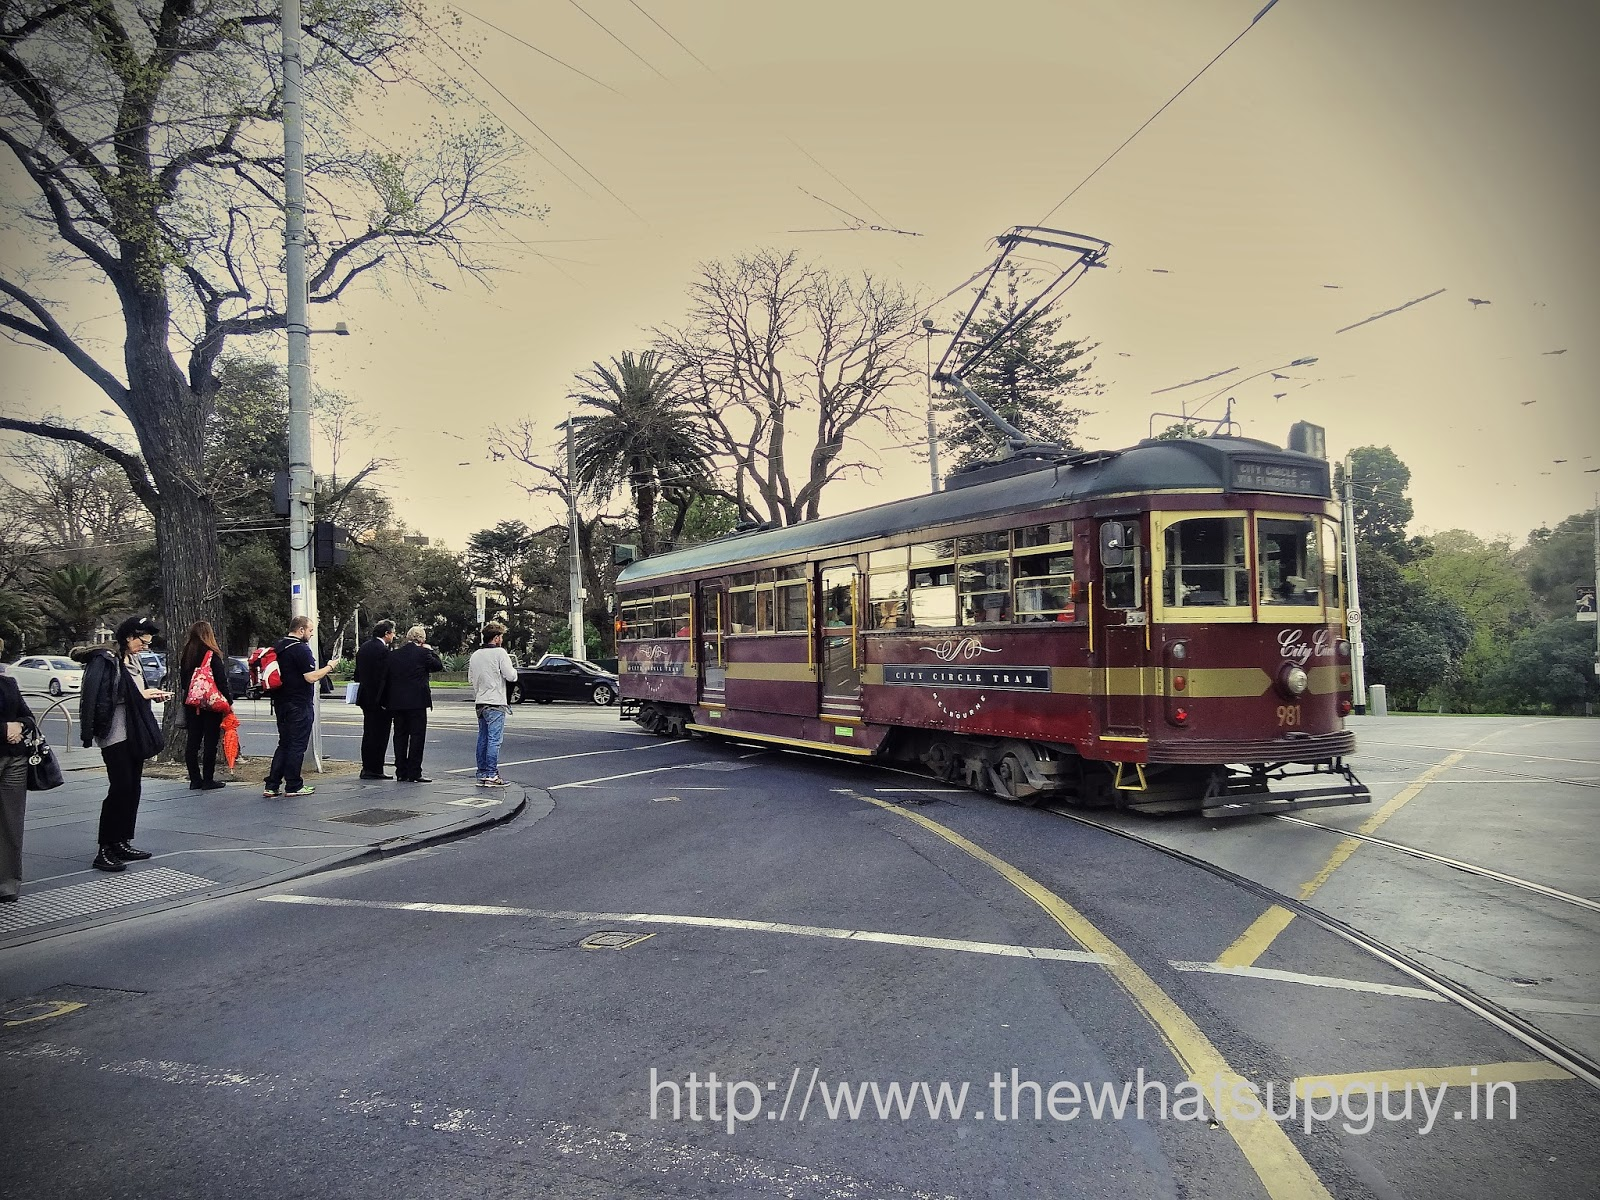 Trams on the Roads of Melbourne